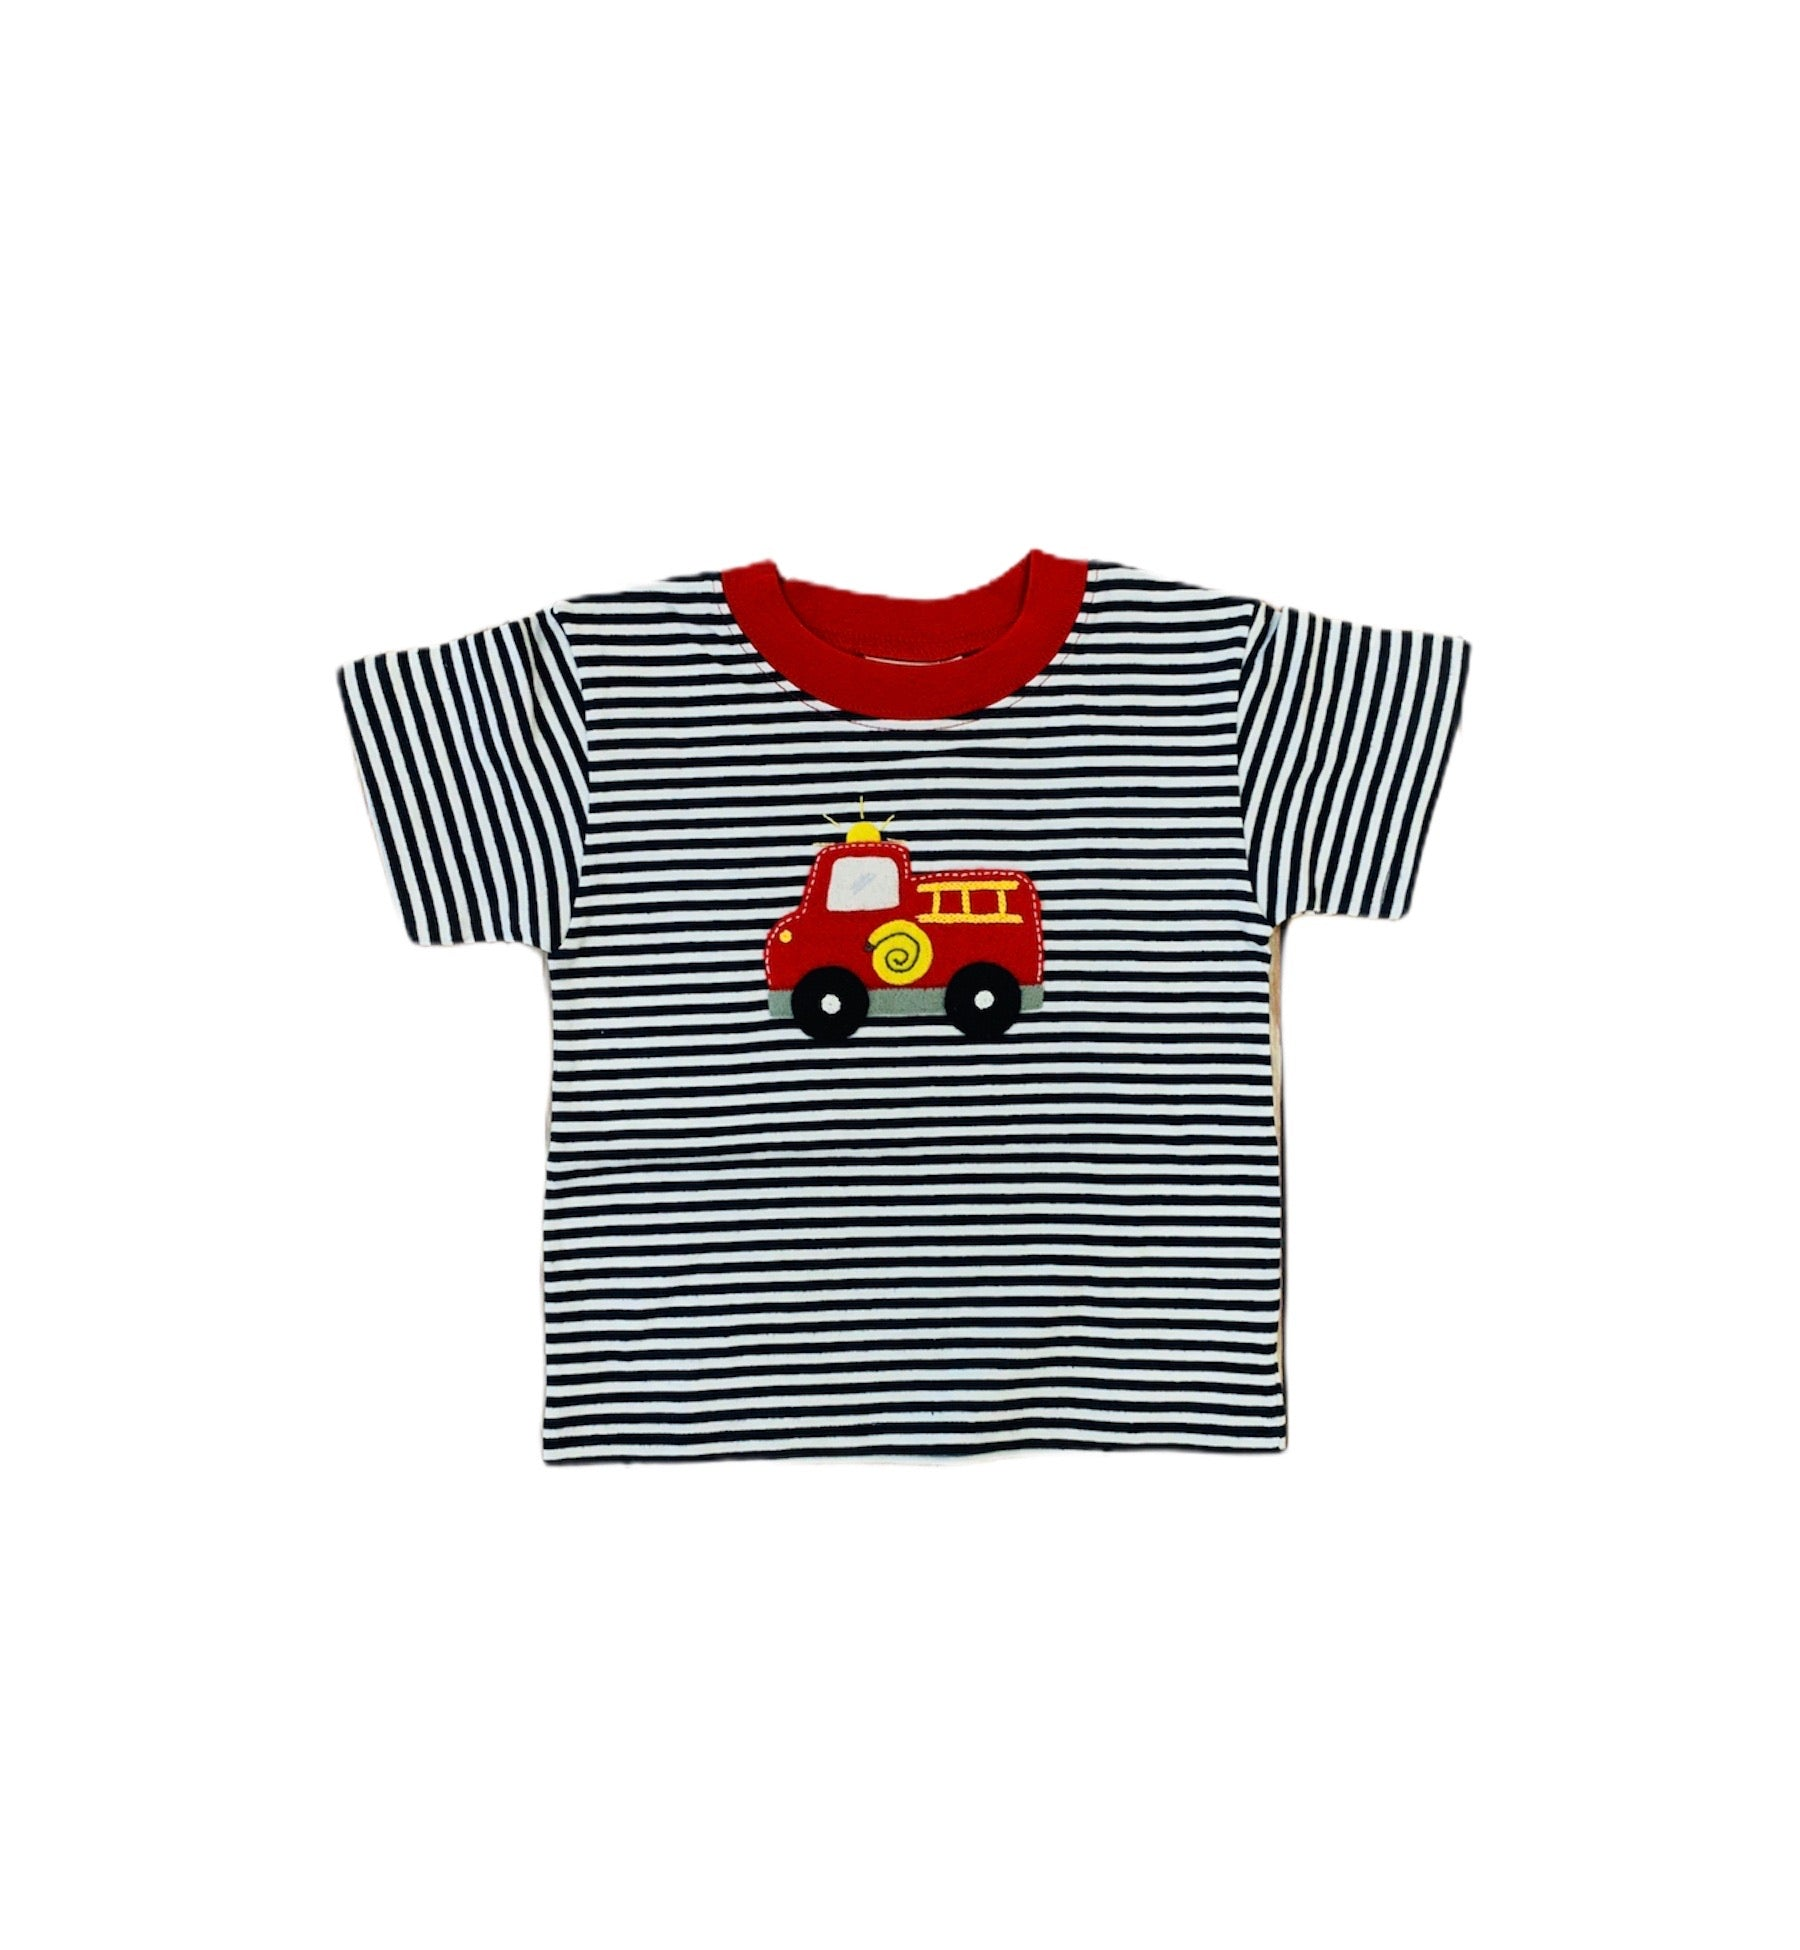 Navy and White Striped Firetruck T-Shirt